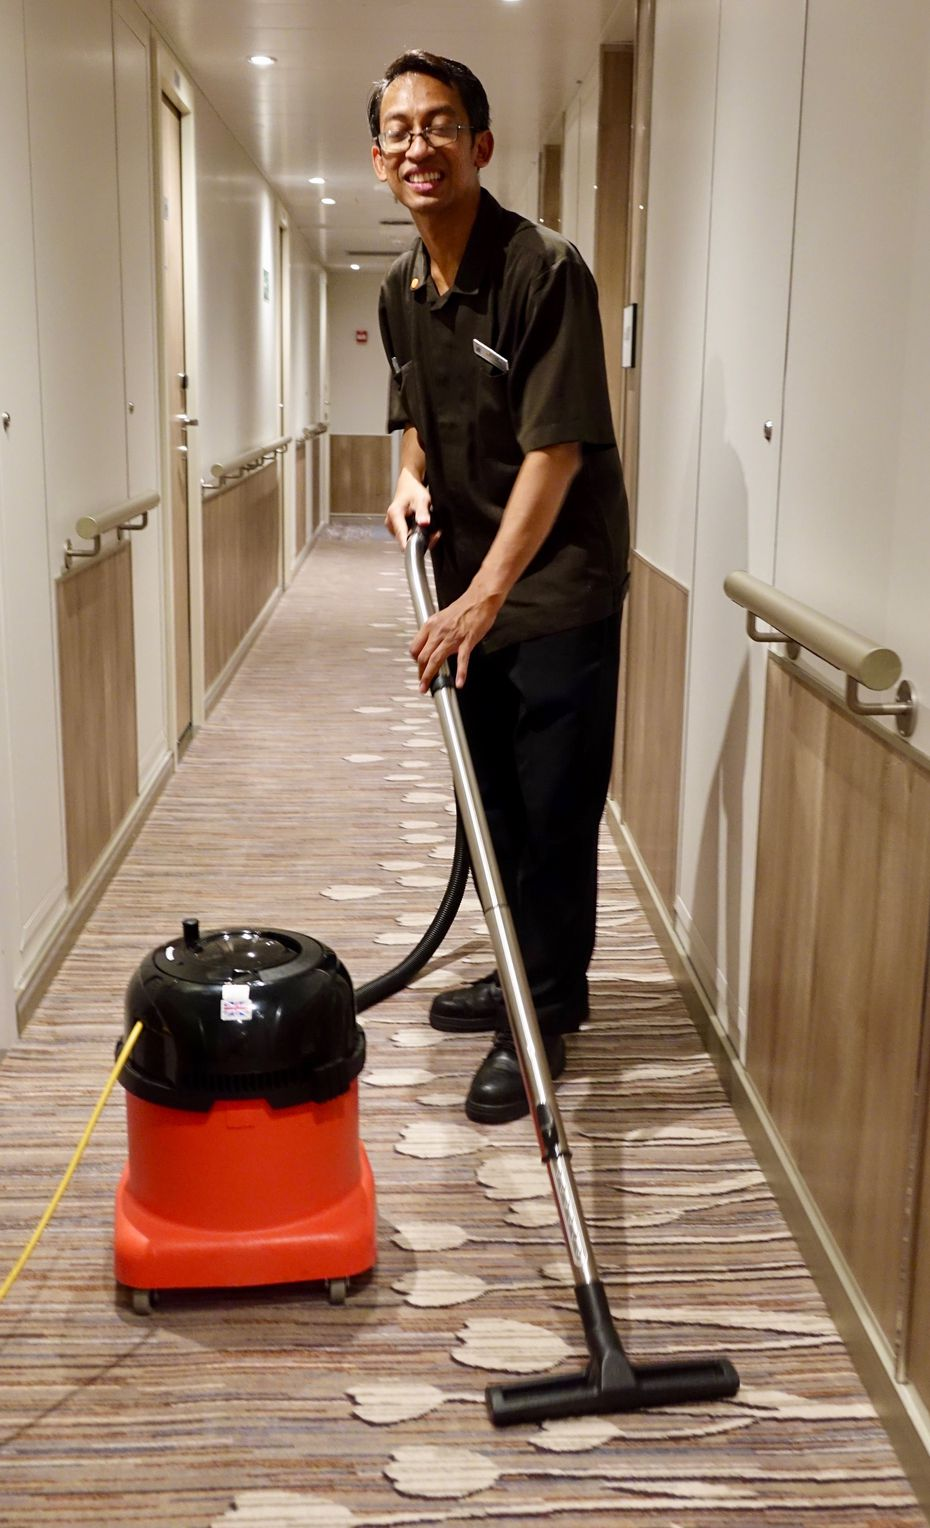 Cabin steward Budhi Prasetyo vacuums the hallway daily after he and his partner have made up 29 cabins aboard the Nieuw Statendam.